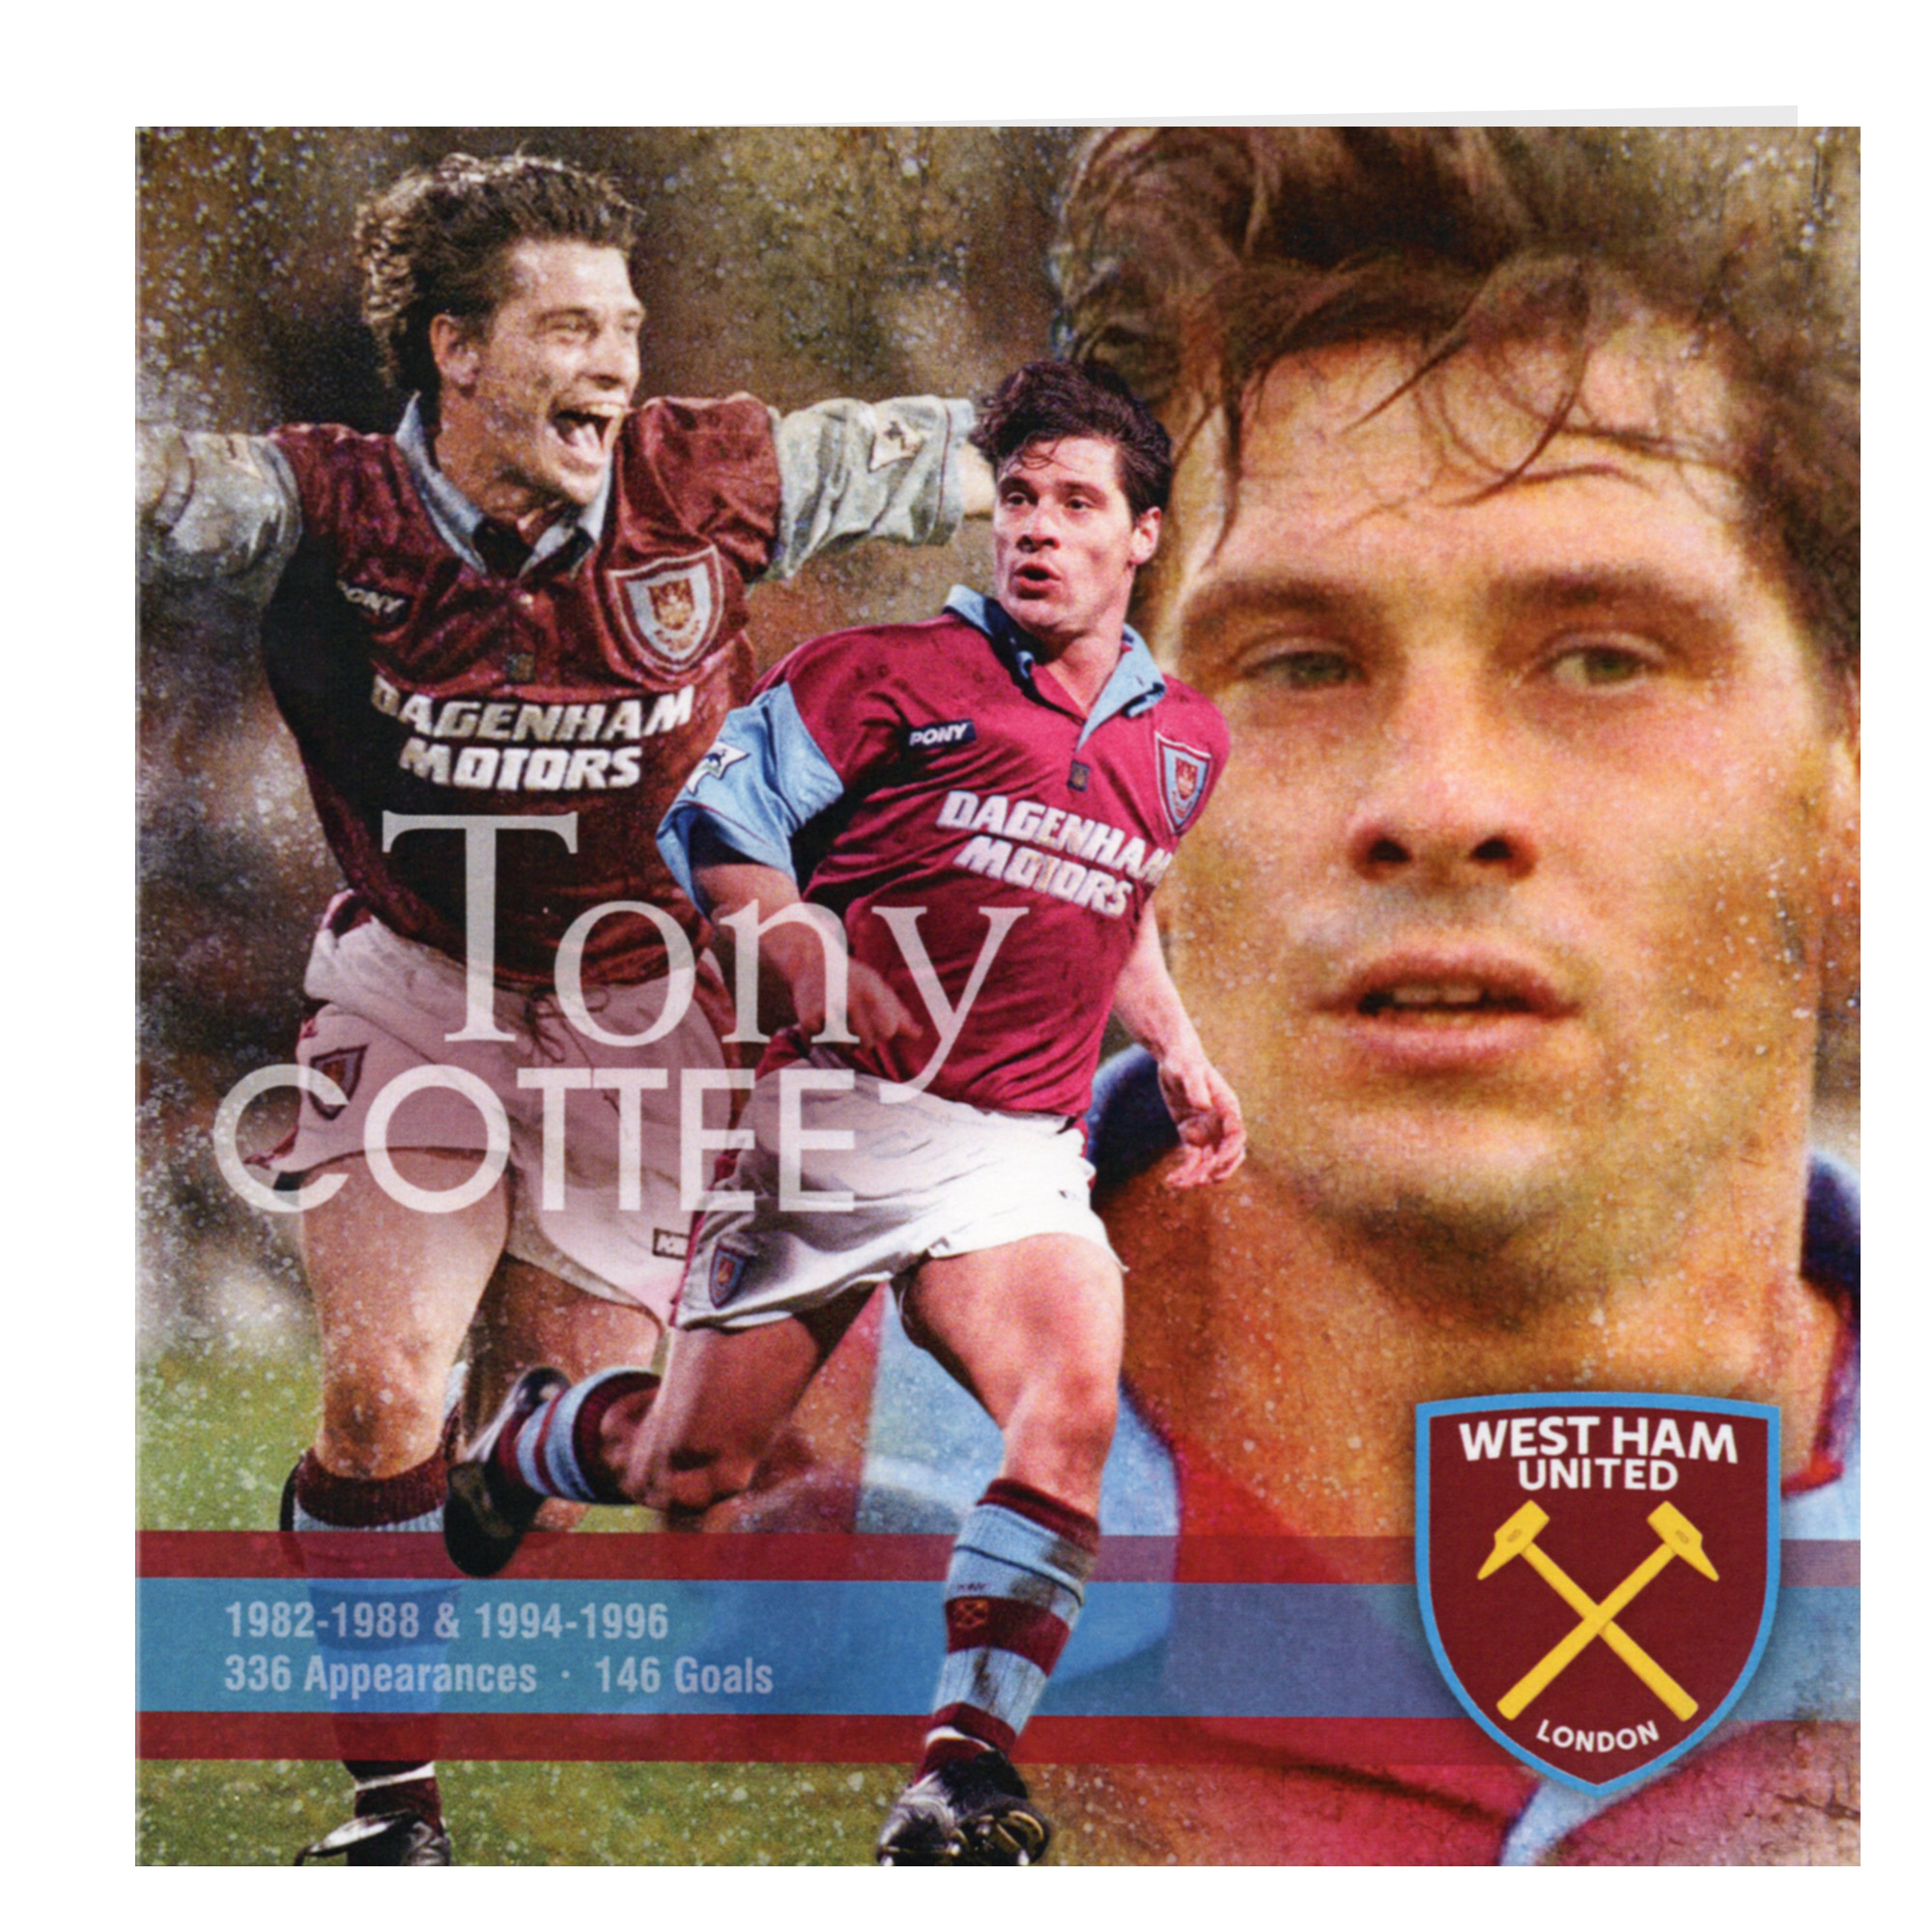 COTTEE MONTAGE CARD